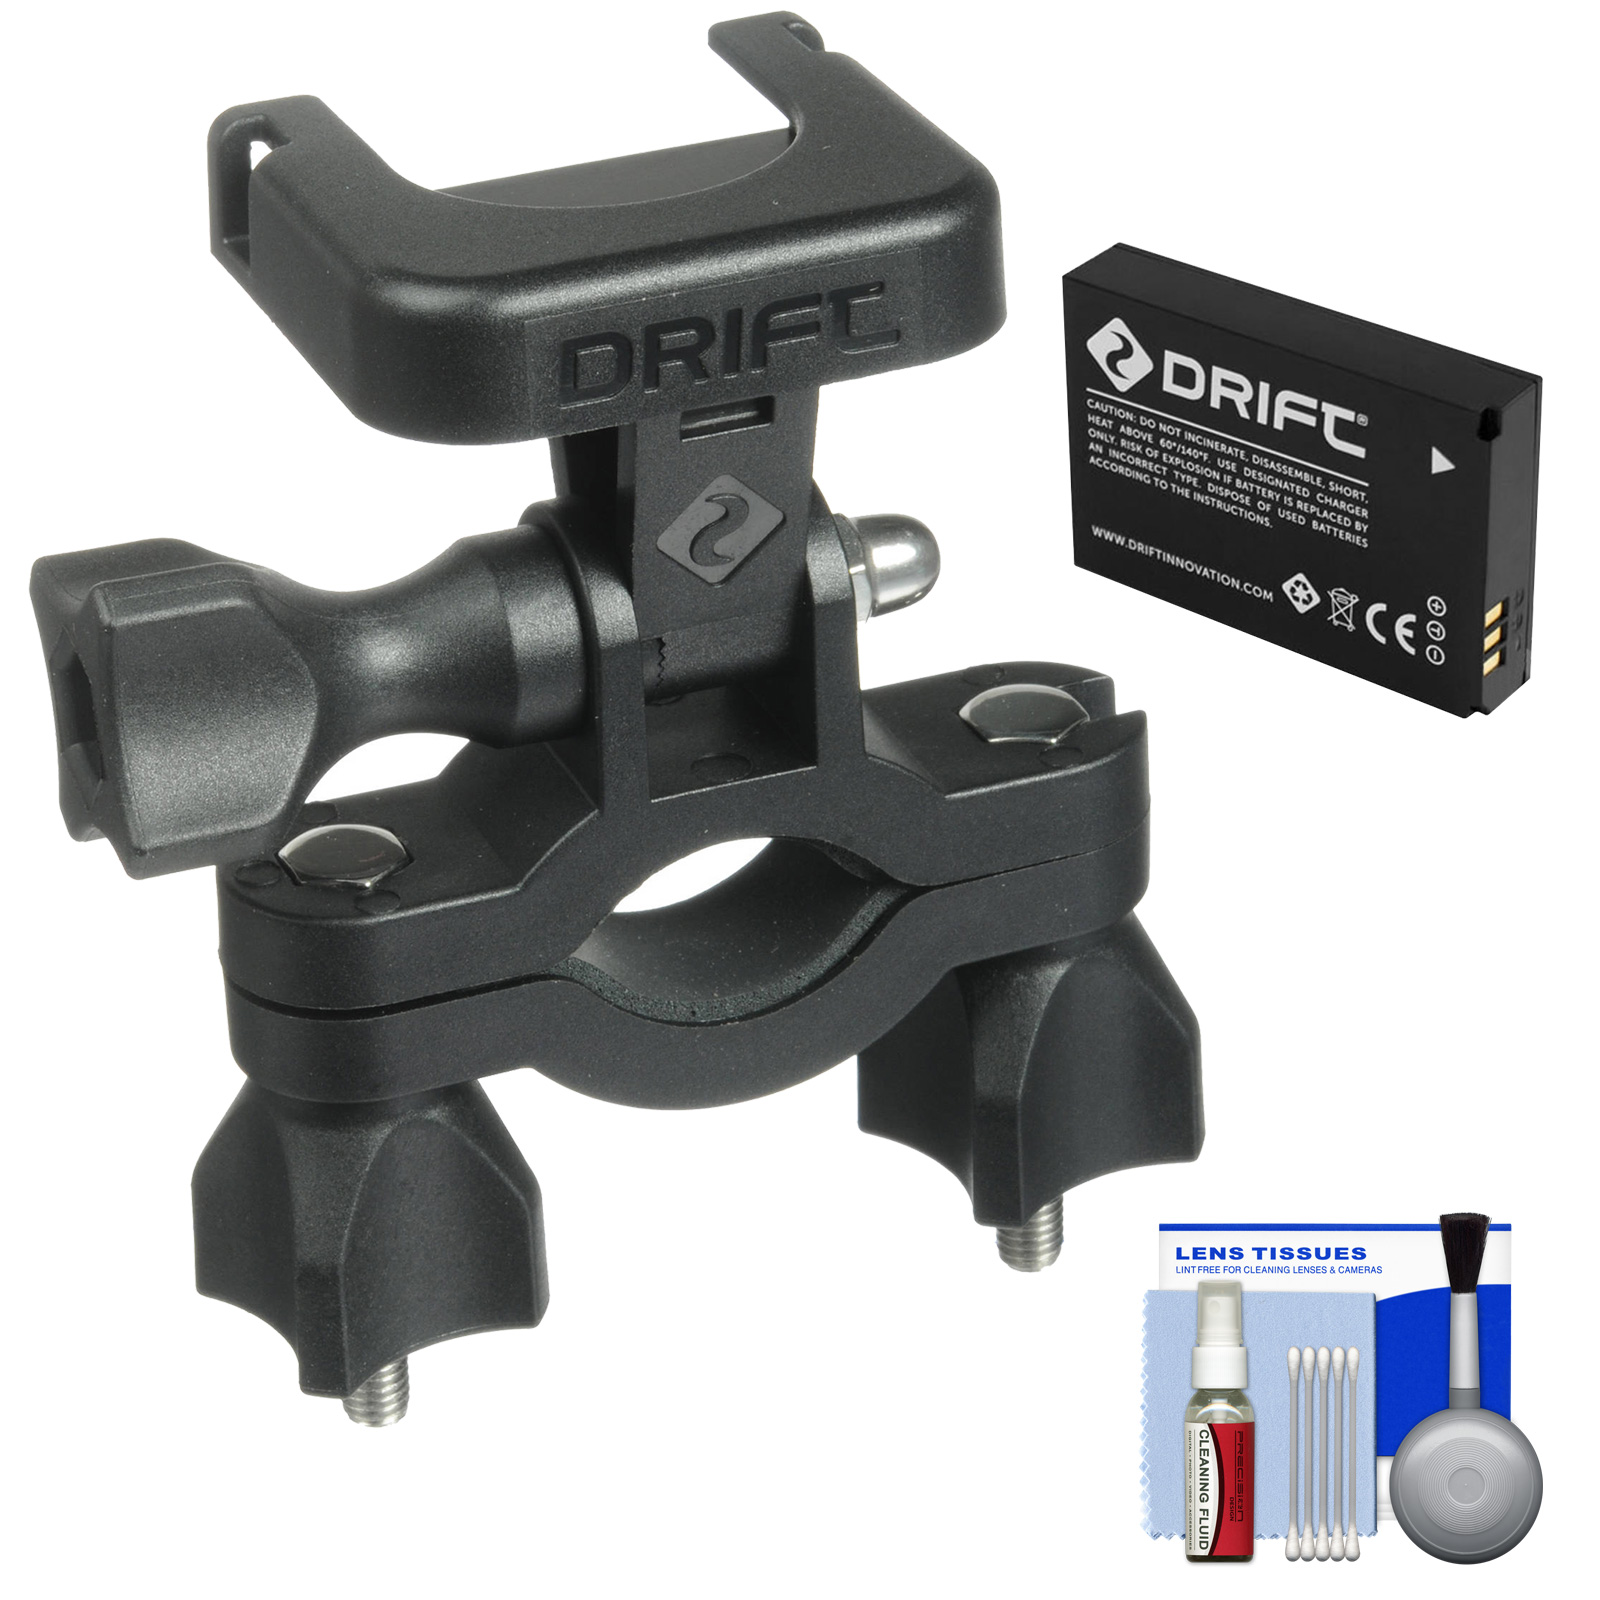 Drift Innovation Handlebar Mount with Battery + Cleaning Kit for Drift HD, HD 170, Ghost, Ghost-S Action Camcorders